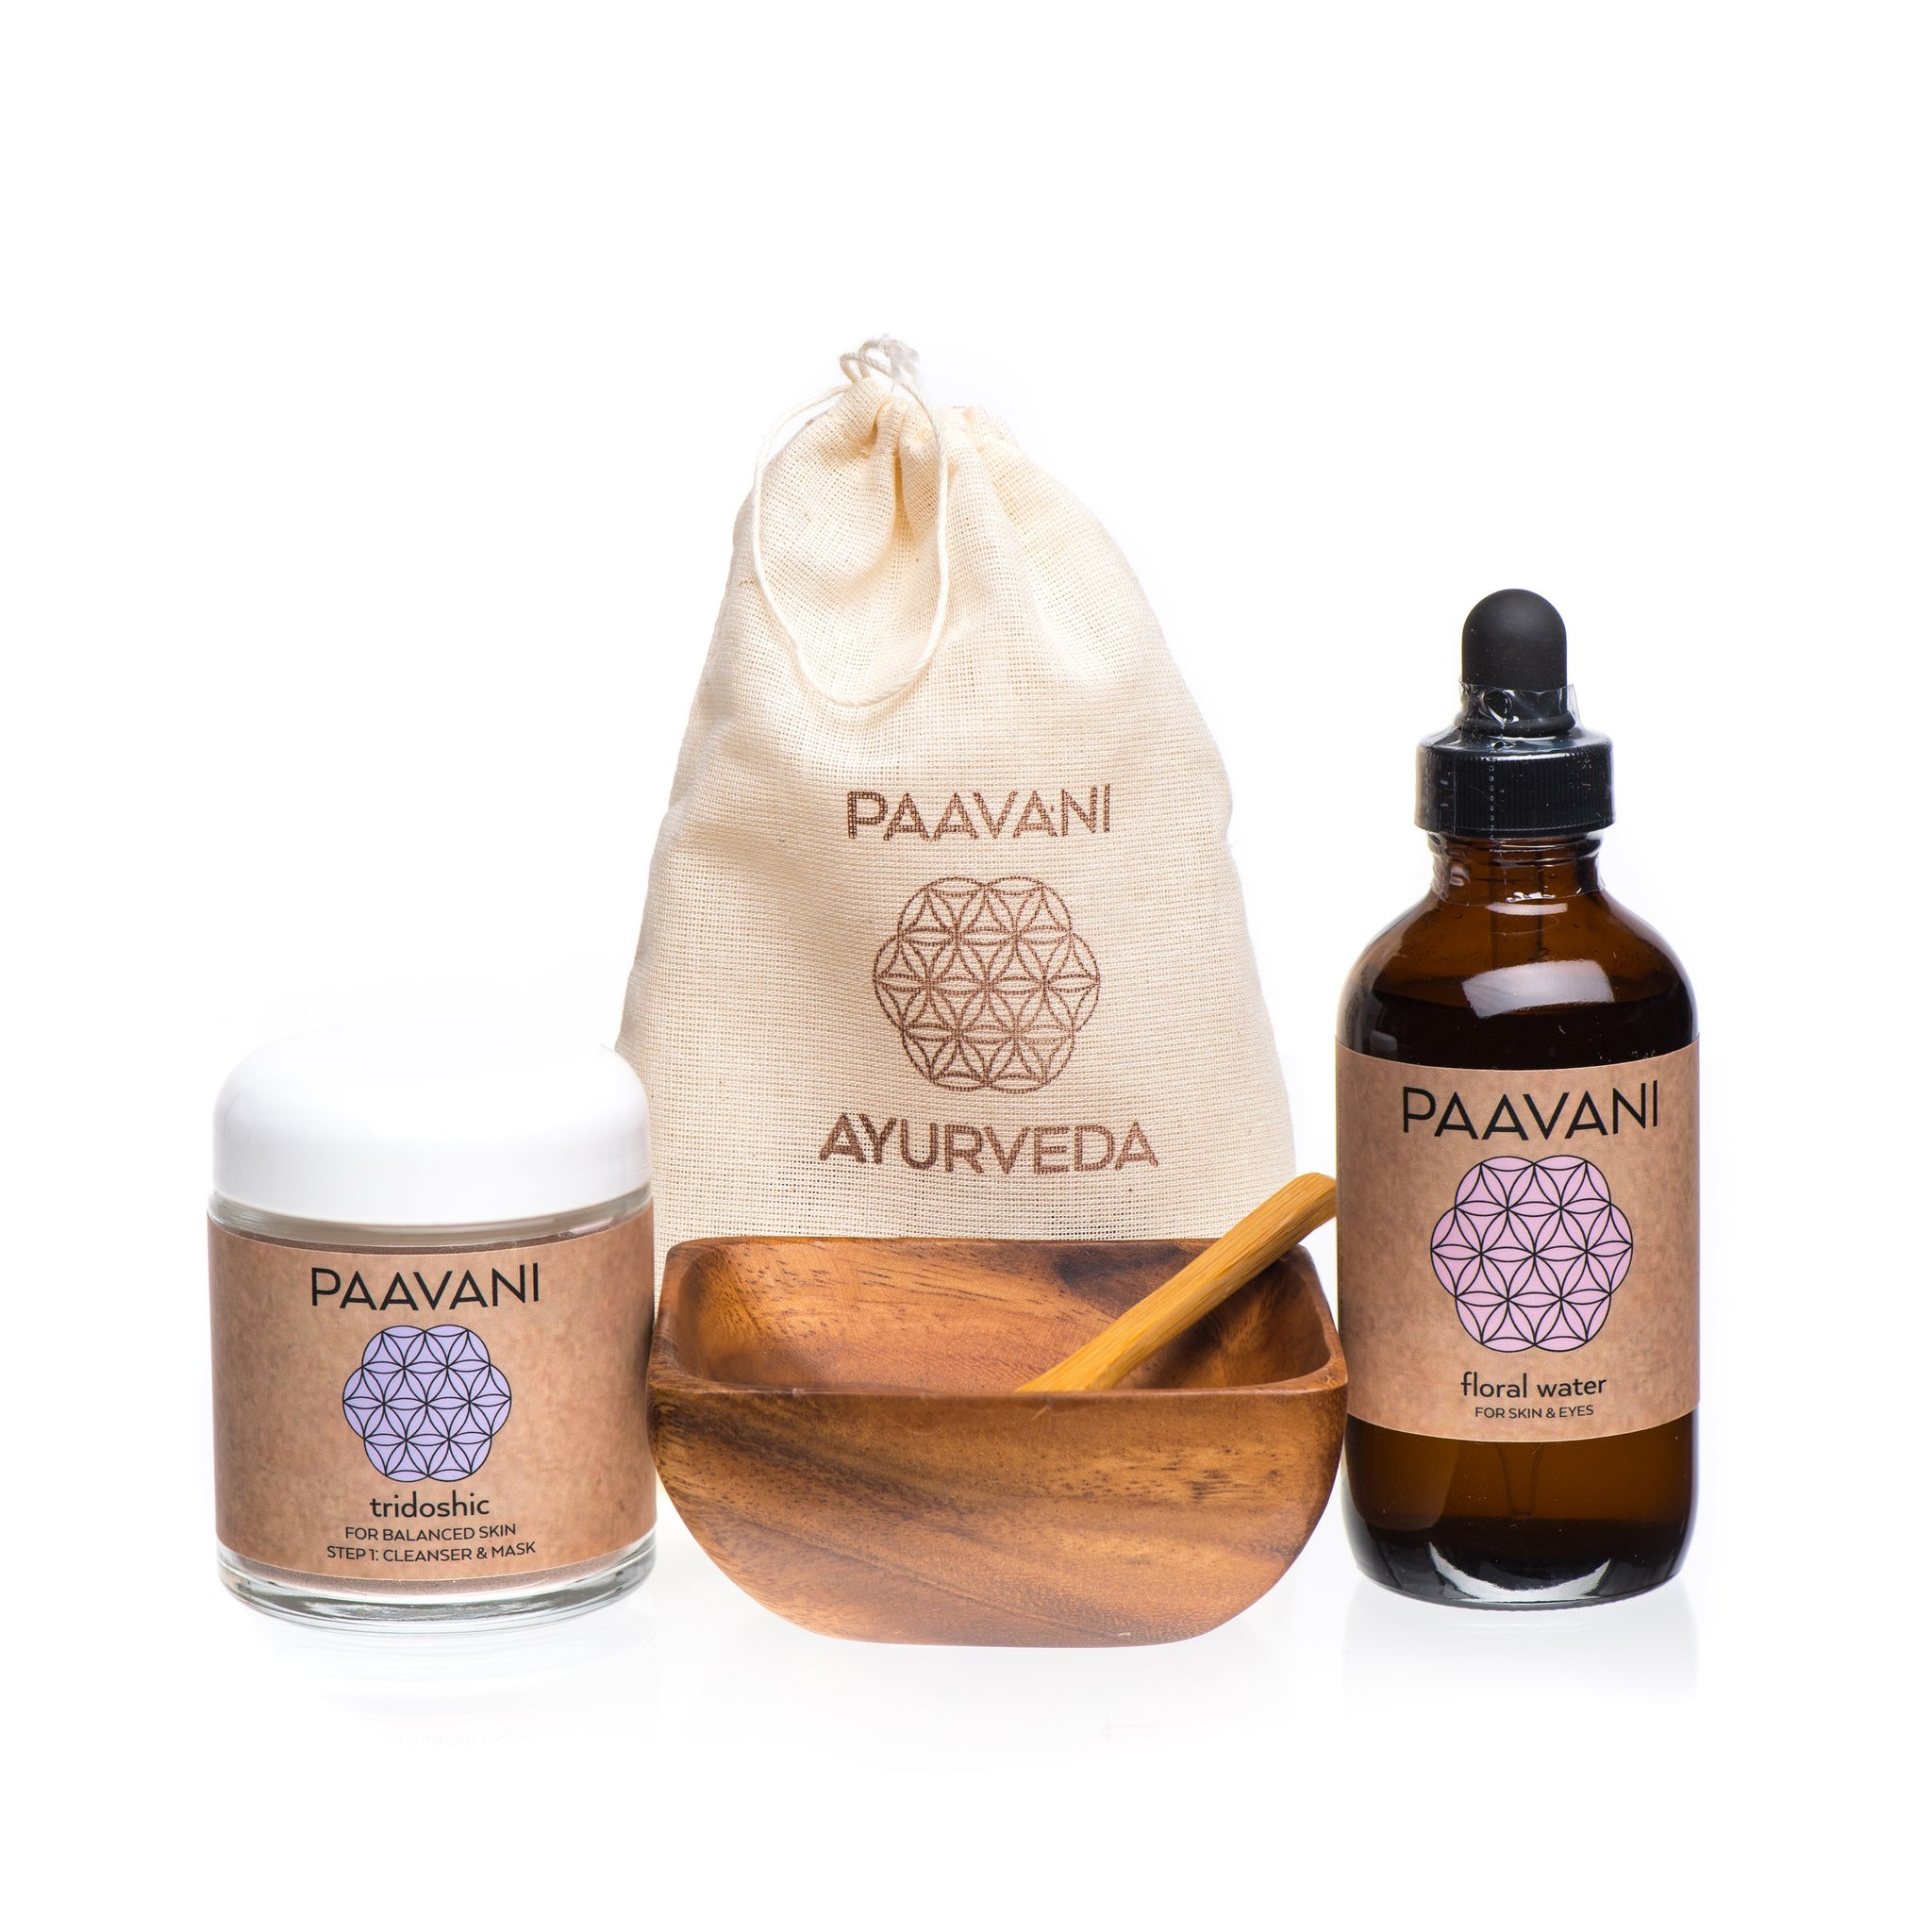 Paavani -The Cleanser & Mask Ritual - Aihiki Skin